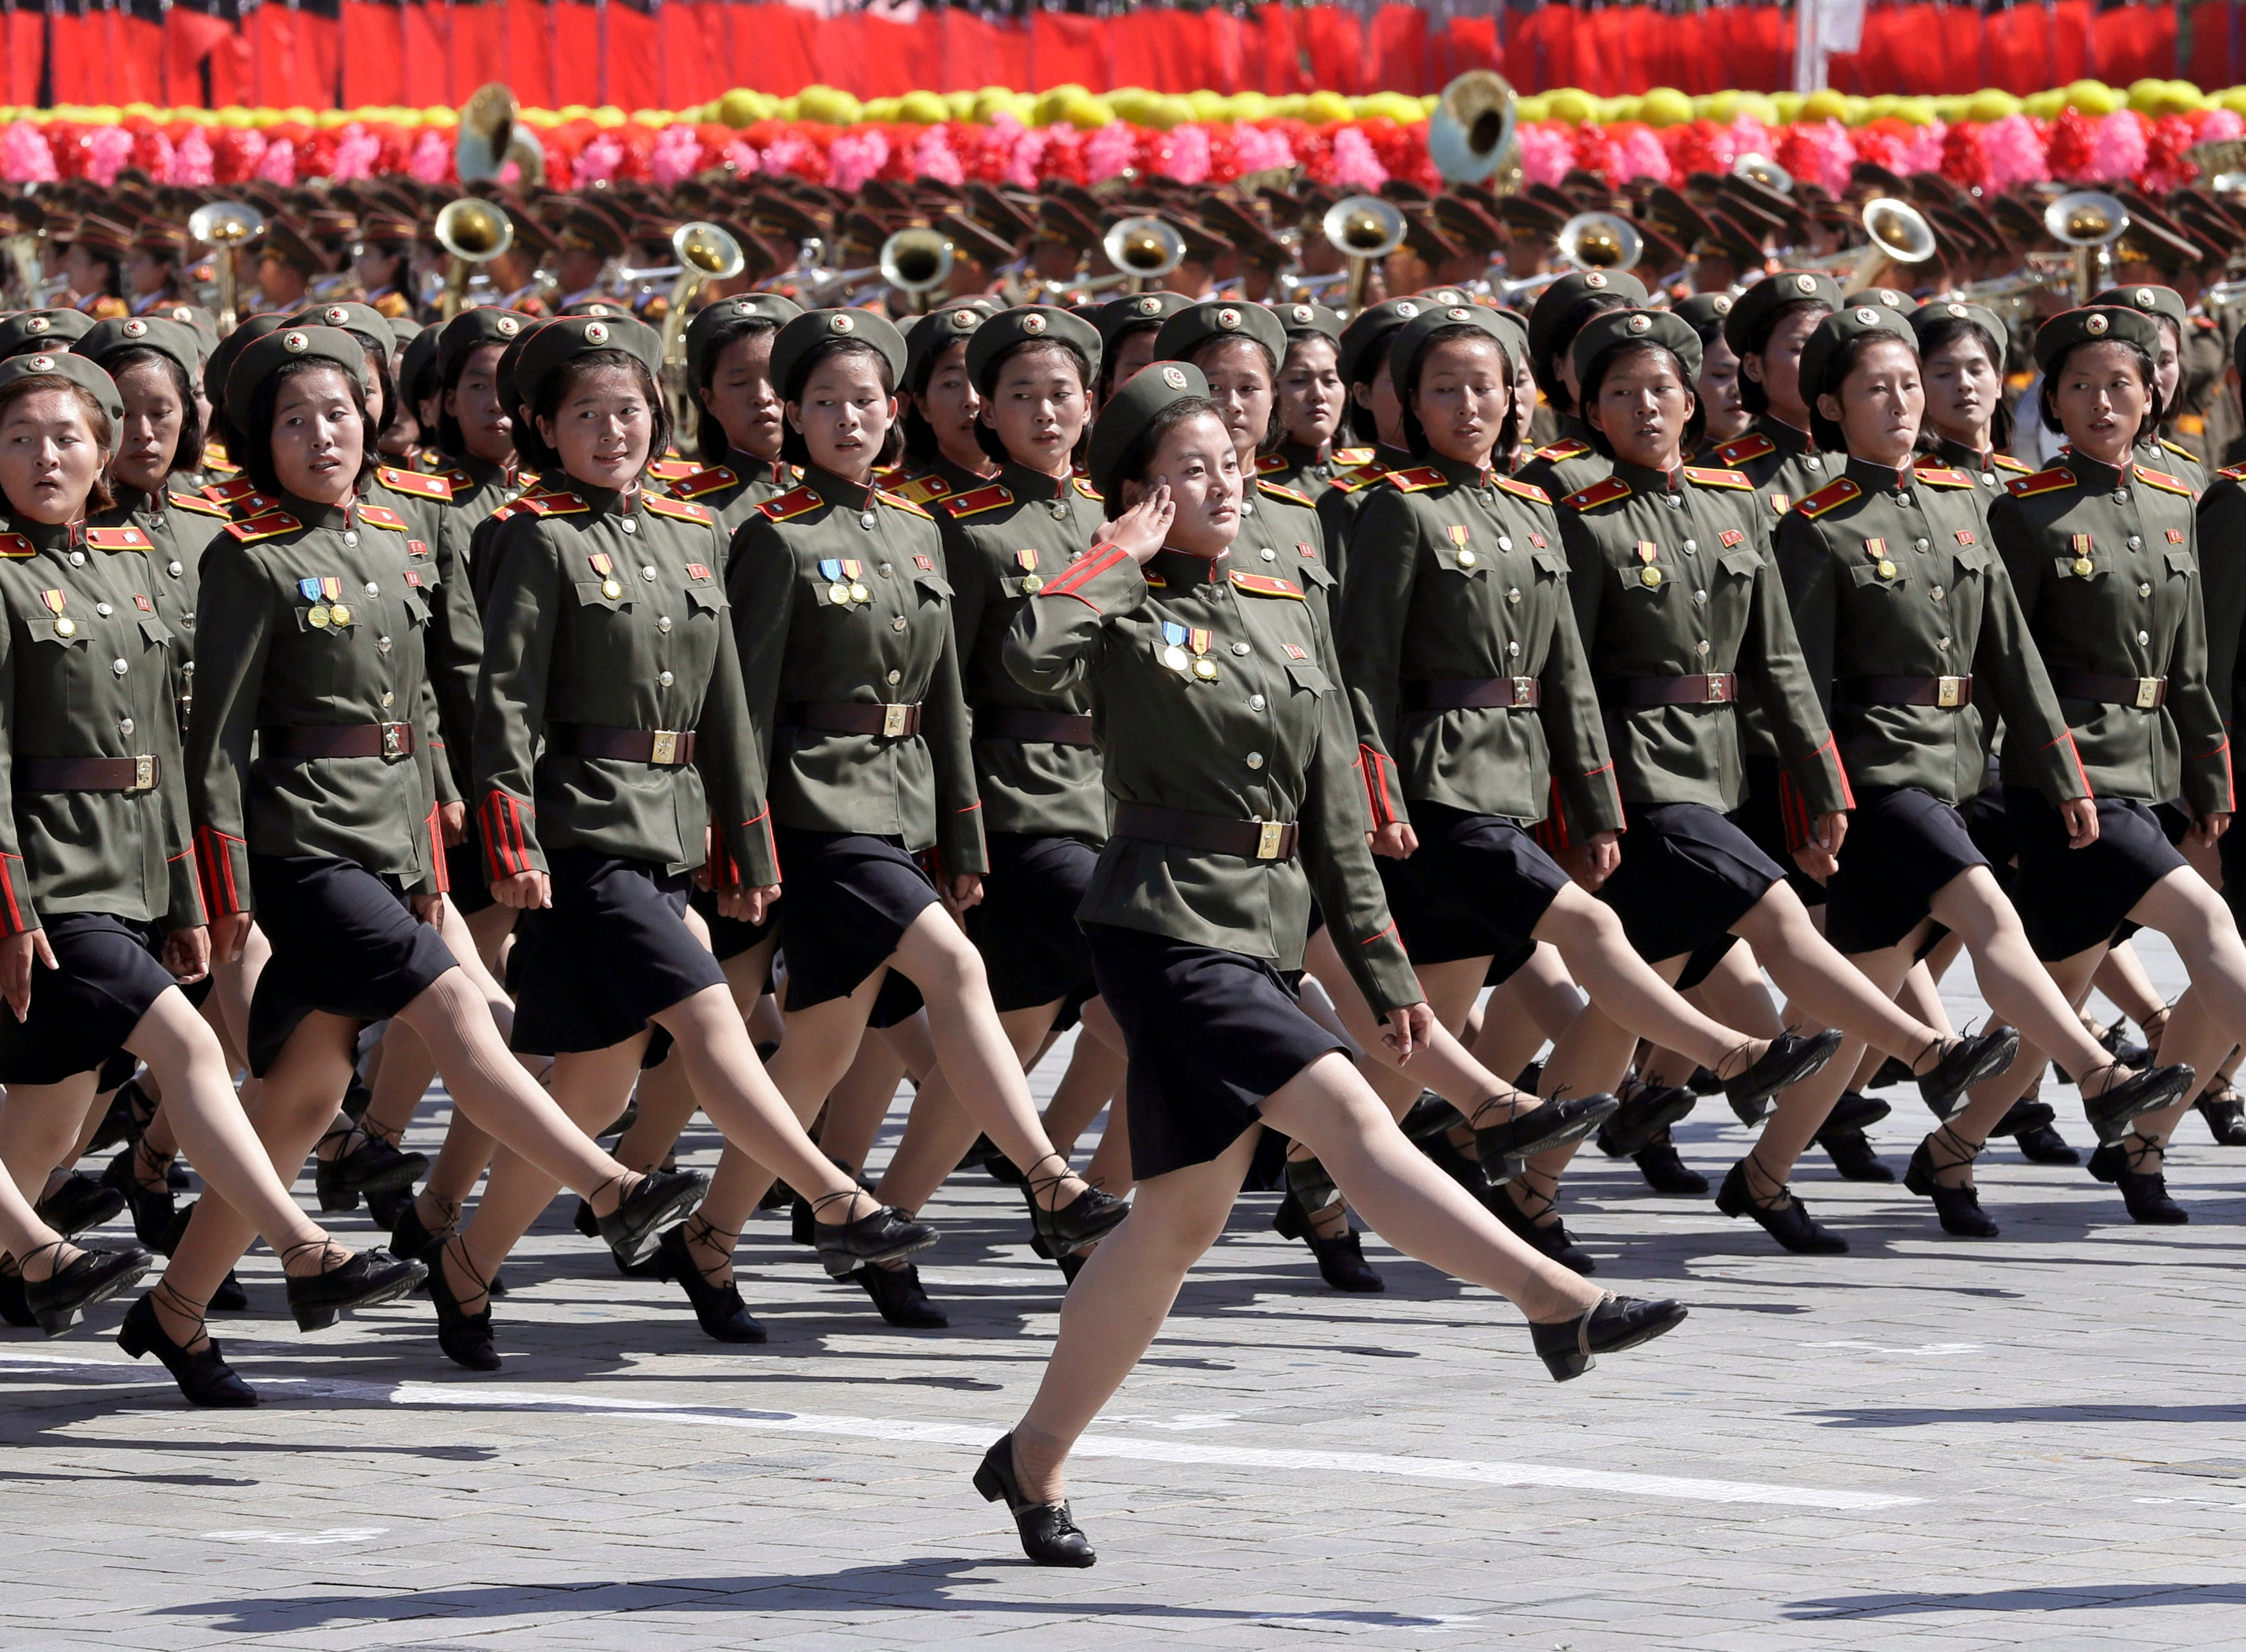 North Korean soldiers march during a parade for the 70th anniversary of North Korea's founding day in Pyongyang, North Korea, Sunday, Sept. 9, 2018. North Korea staged a major military parade, huge rallies and will revive its iconic mass games on Sunday to mark its 70th anniversary as a nation.